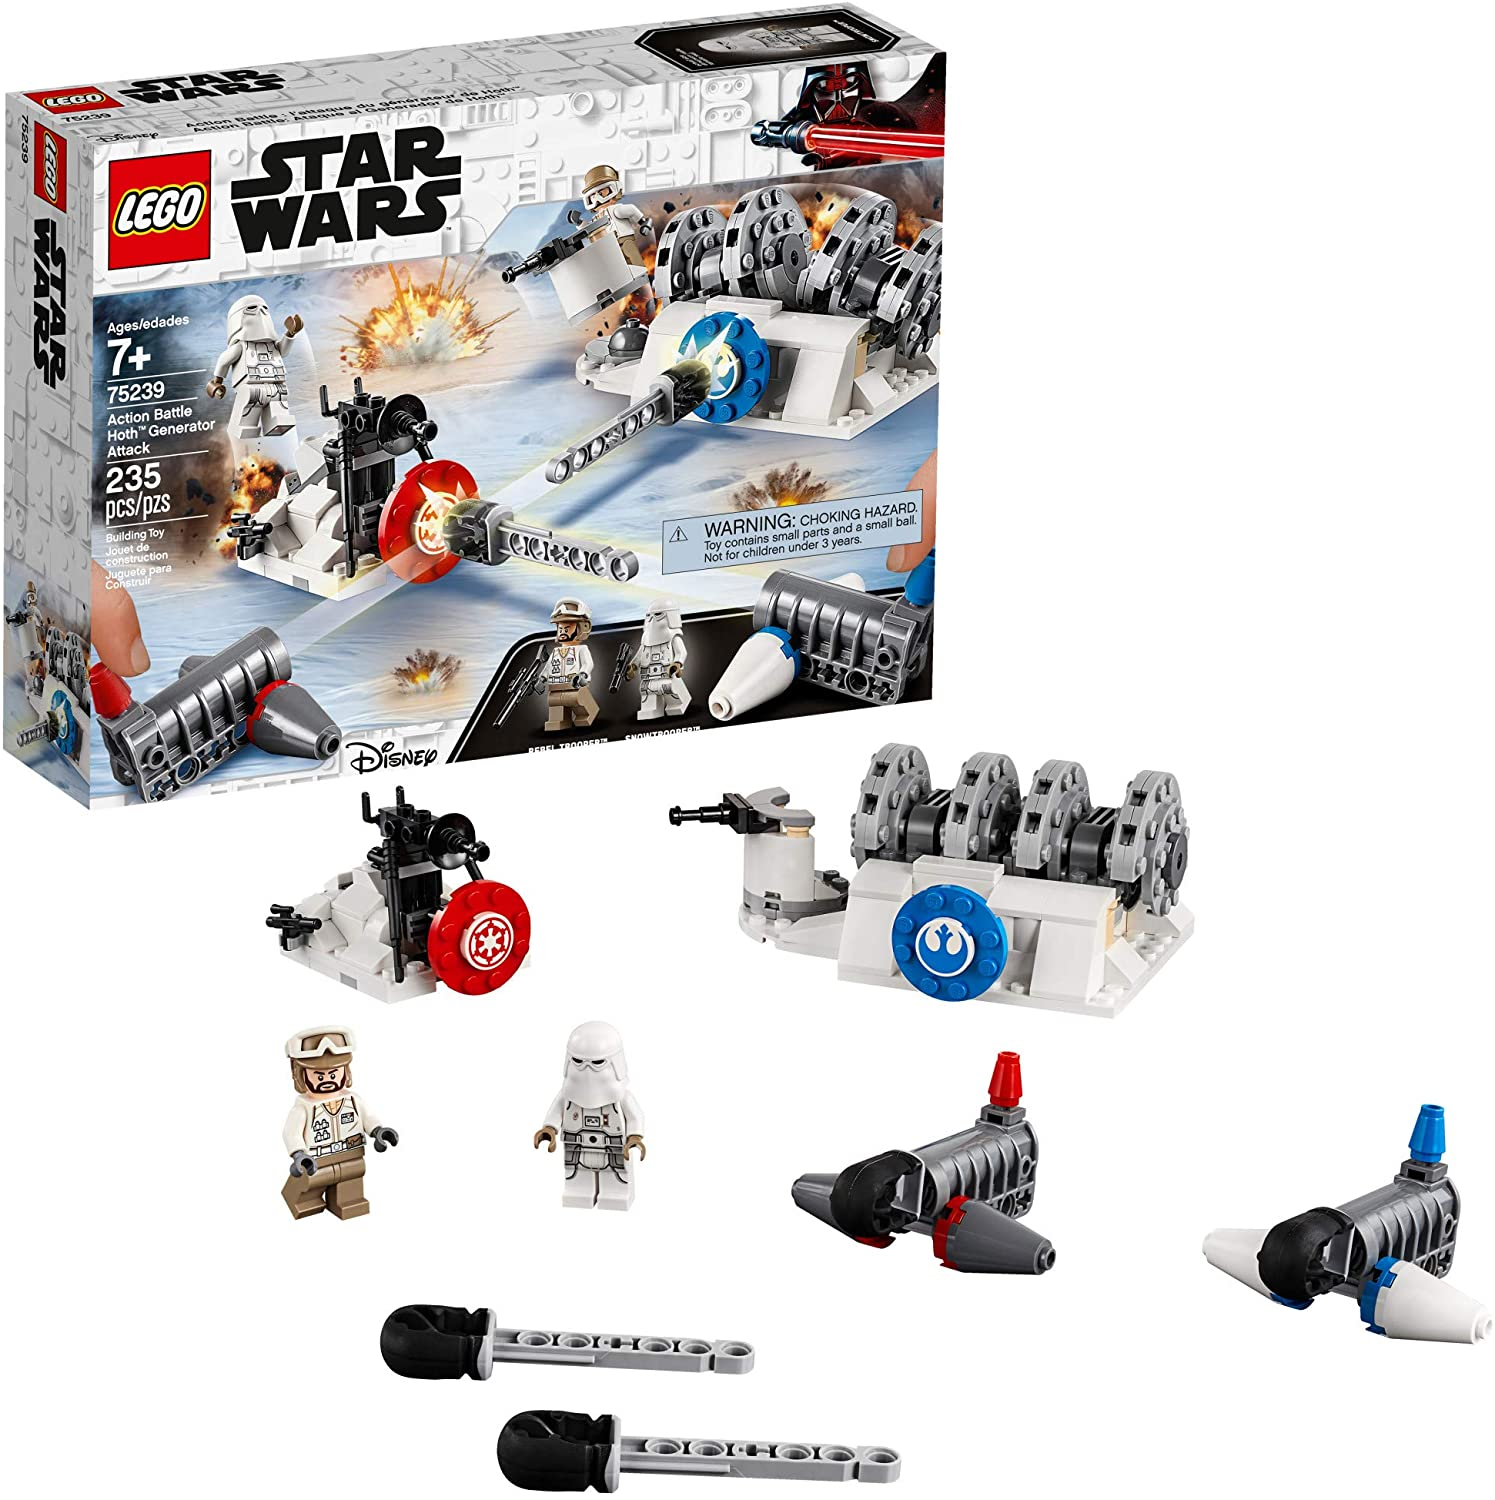 Lego Star Wars Ataque Gerador Action Battle Hoth - Lego 75239